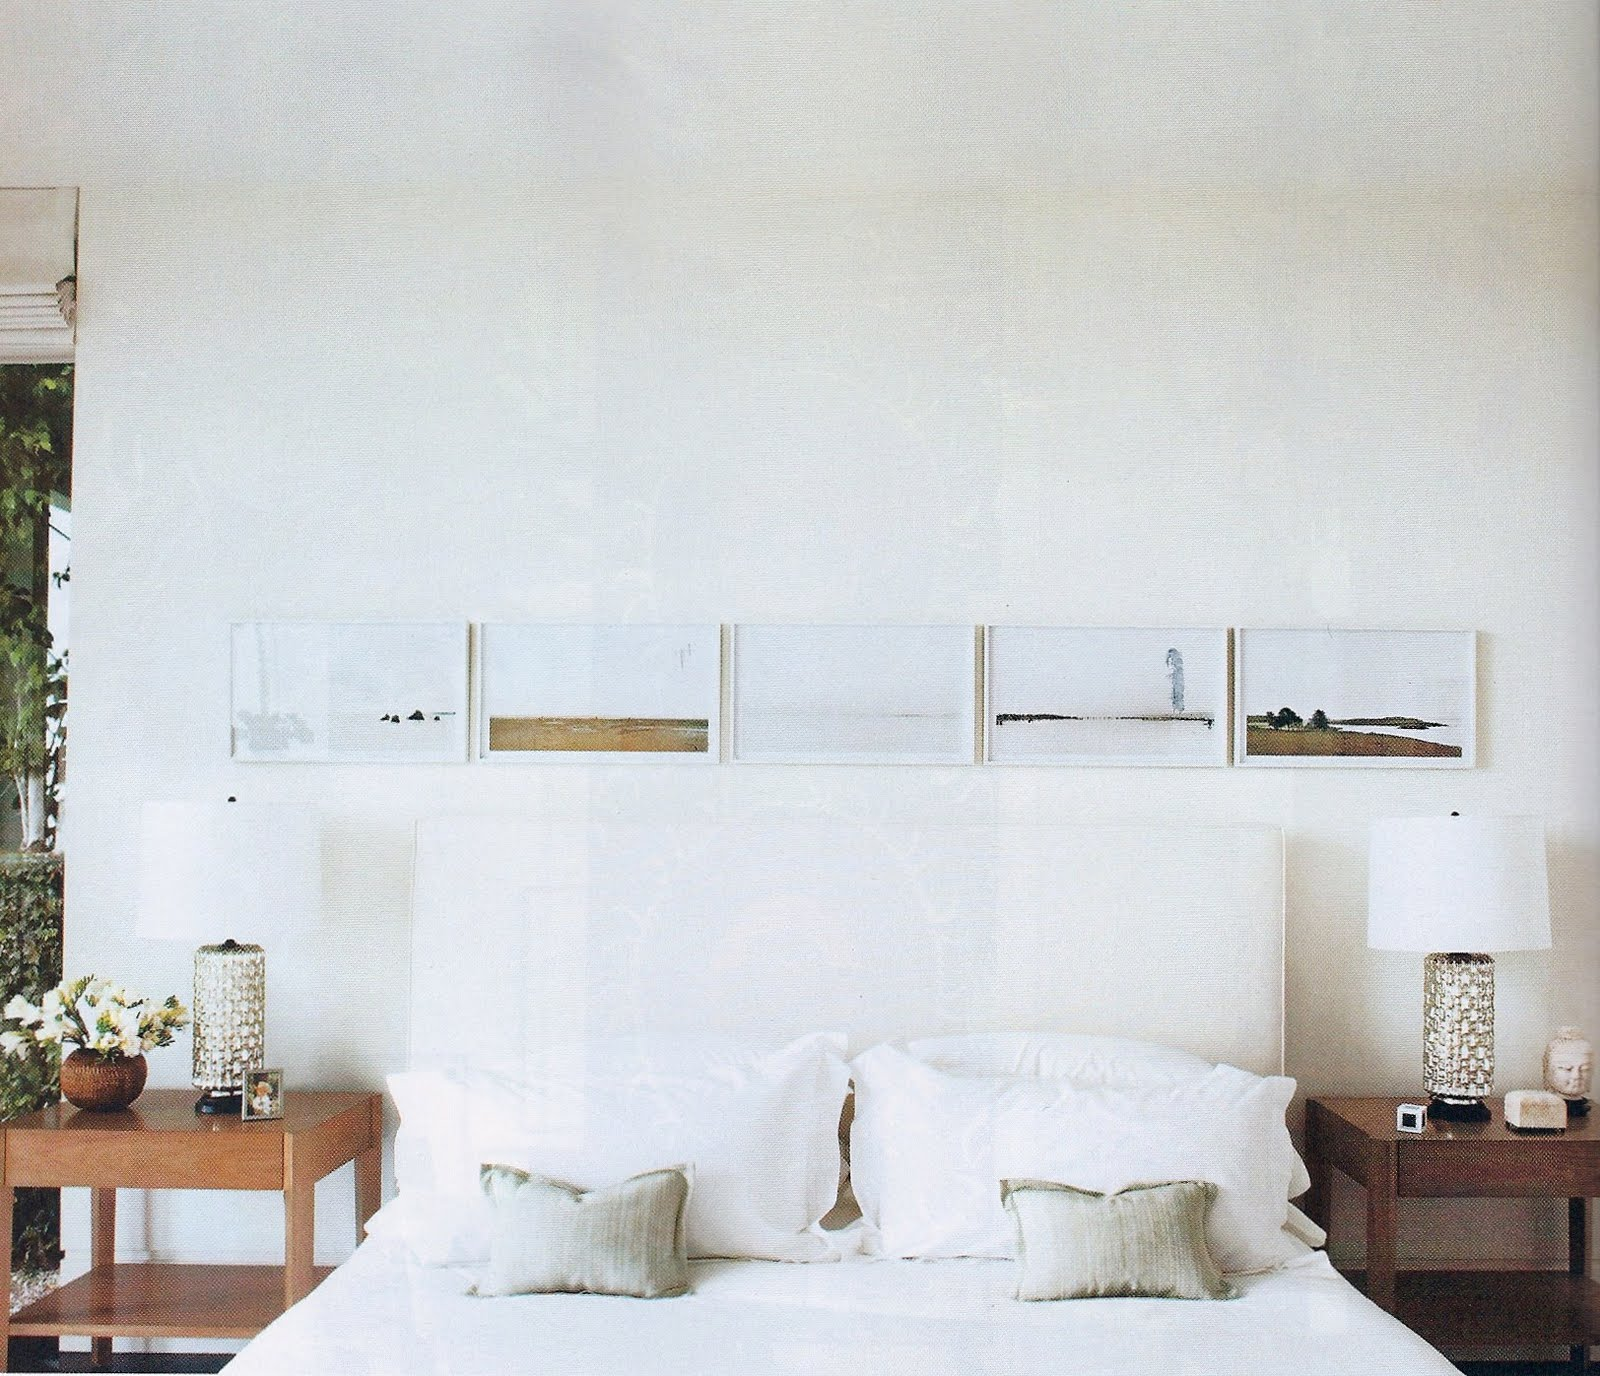 London Bedroom Accessories Elle Decor Bedroom Trendy Bedroom Lighting Master Bedroom Accessories: SPACE FOR INSPIRATION: Guest Post 03: 'Cozying Up For